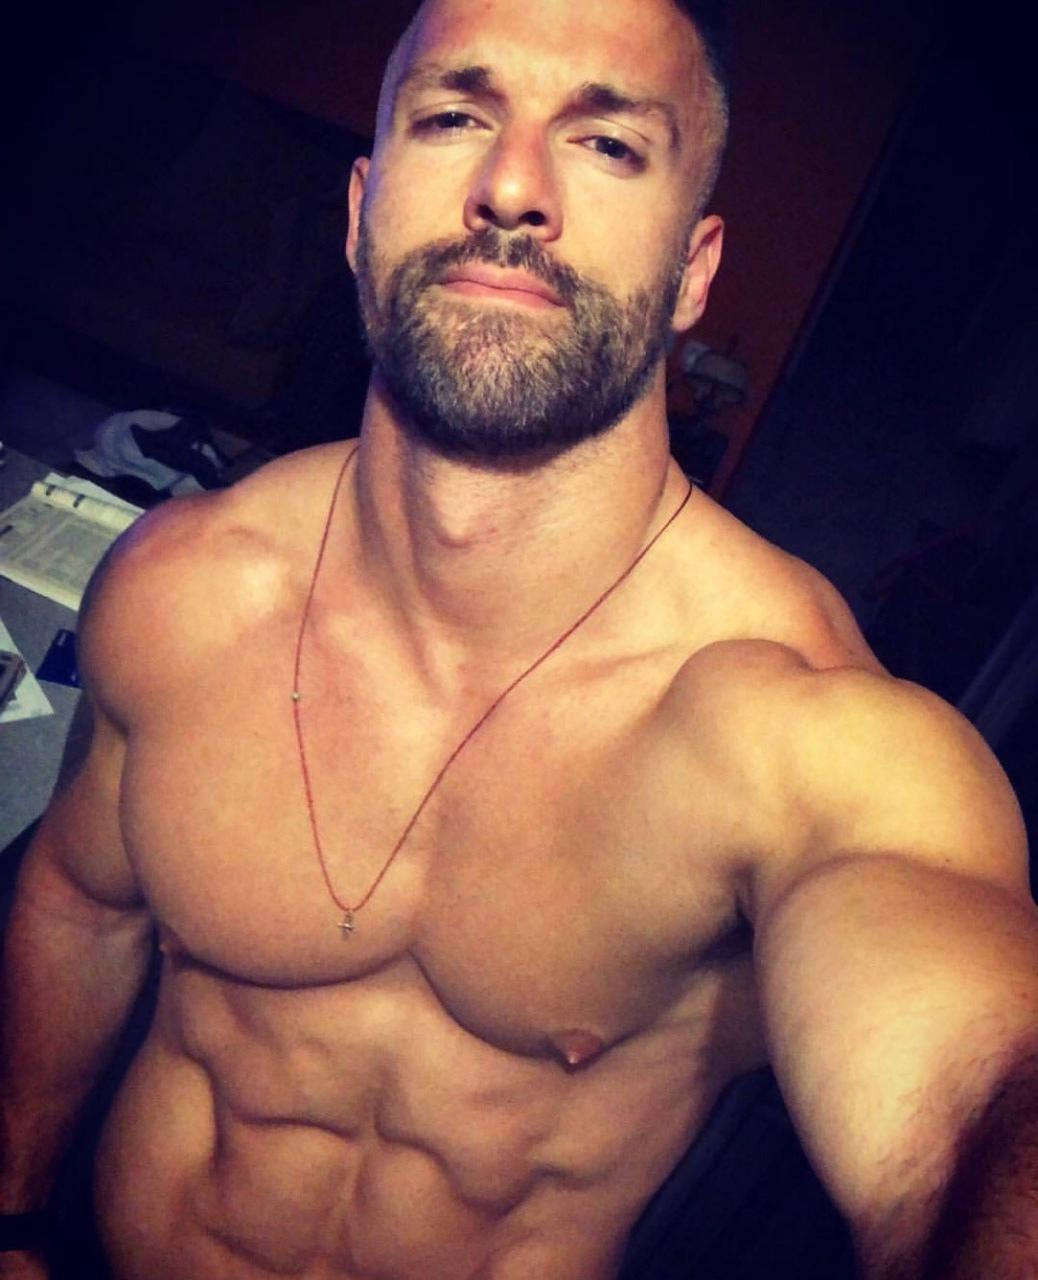 masculine-bearded-daddy-ripped-sixpack-abs-perky-nipples-pecs-leaked-selfies